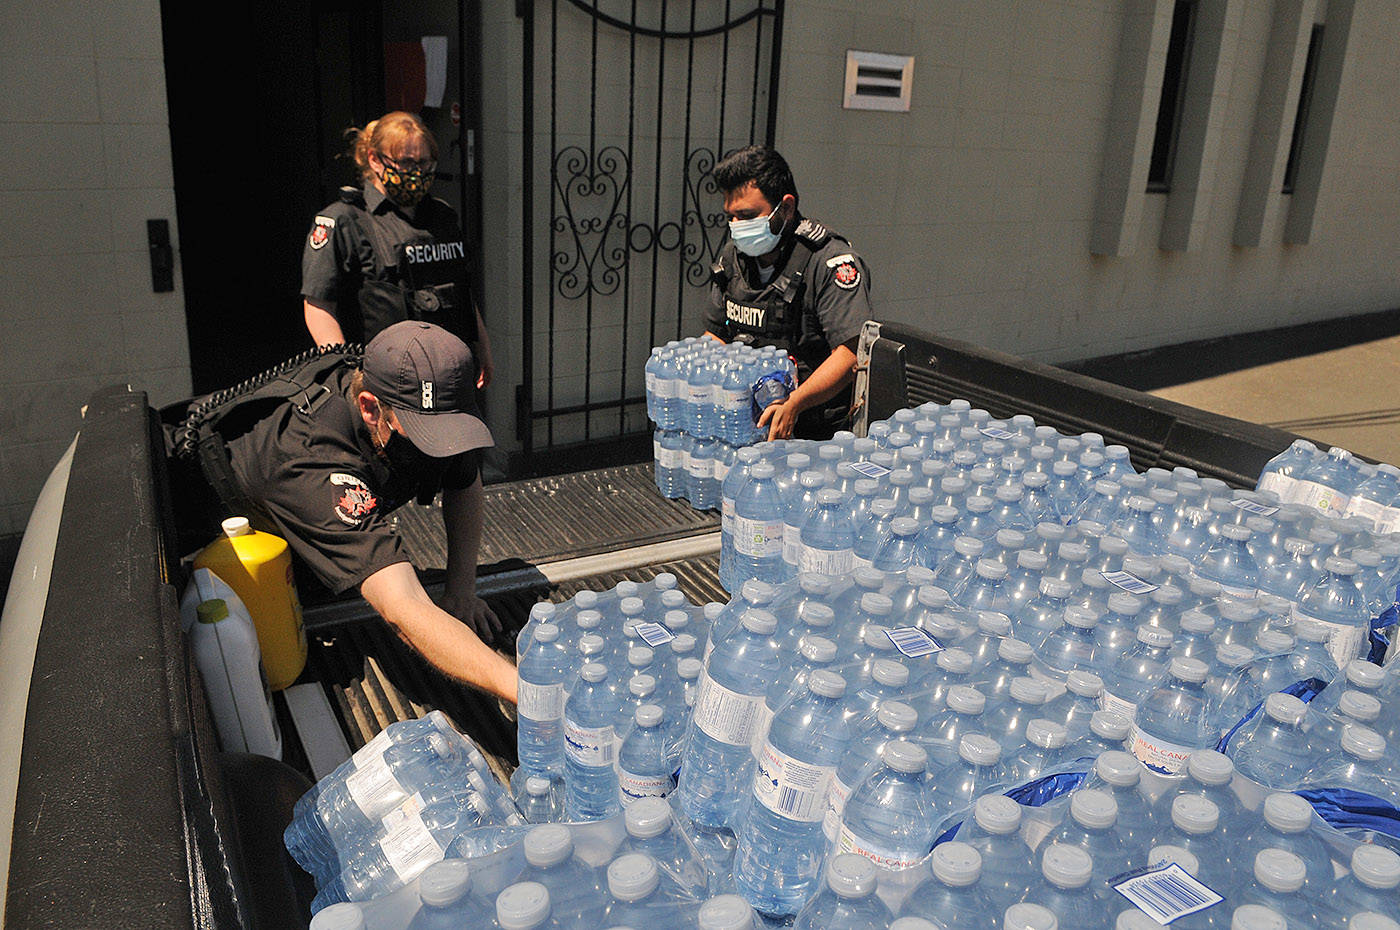 Griffin Security staff unload donations of bottled water that will be handed out to Chilliwack's homeless community and others. They are seen here on Tuesday, June 22, 2021. (Jenna Hauck/ Chilliwack Progress)